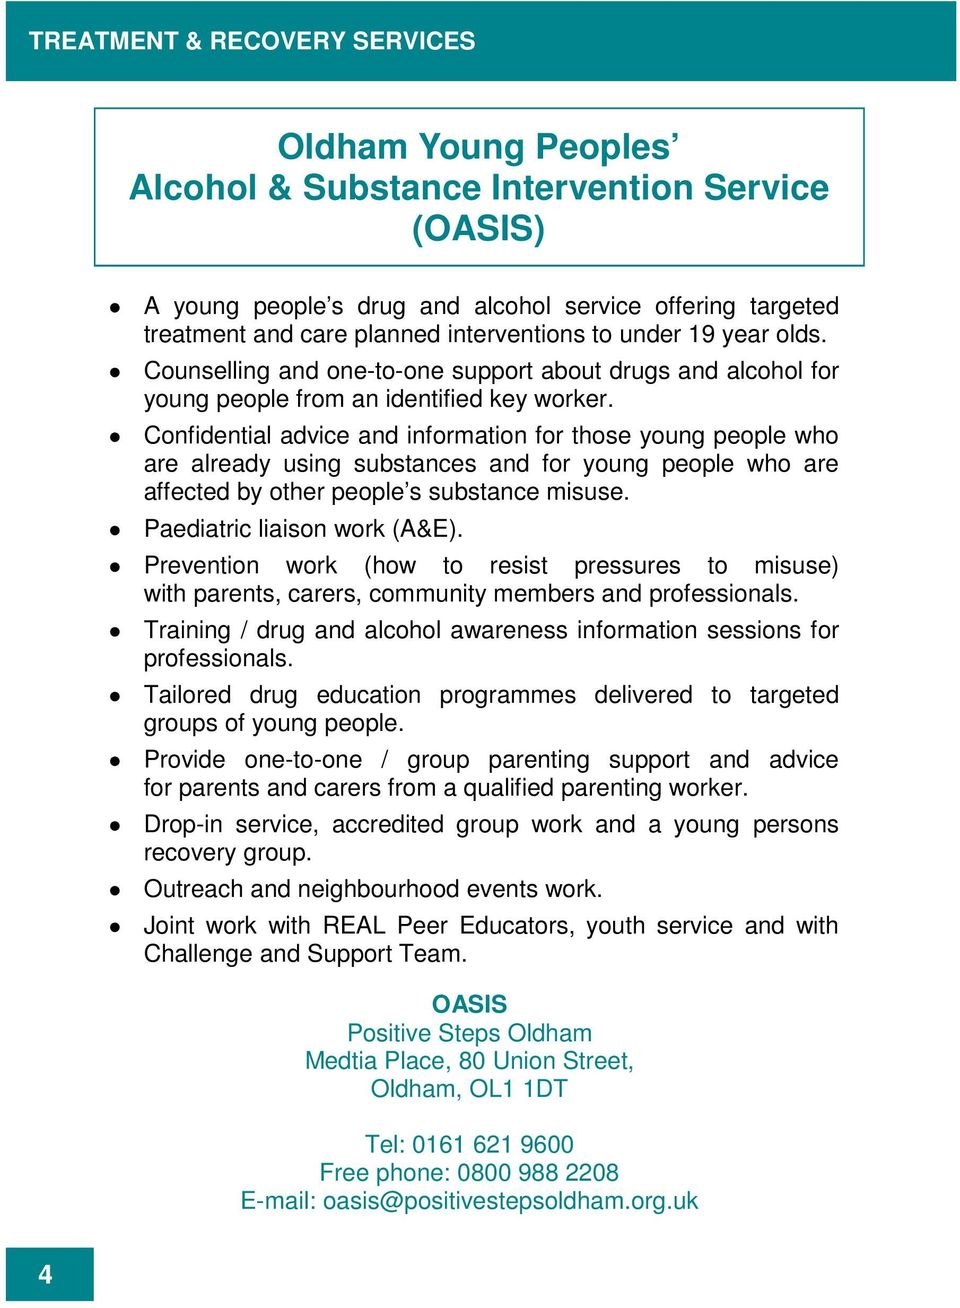 Confidential advice and information for those young people who are already using substances and for young people who are affected by other people s substance misuse. Paediatric liaison work (A&E).